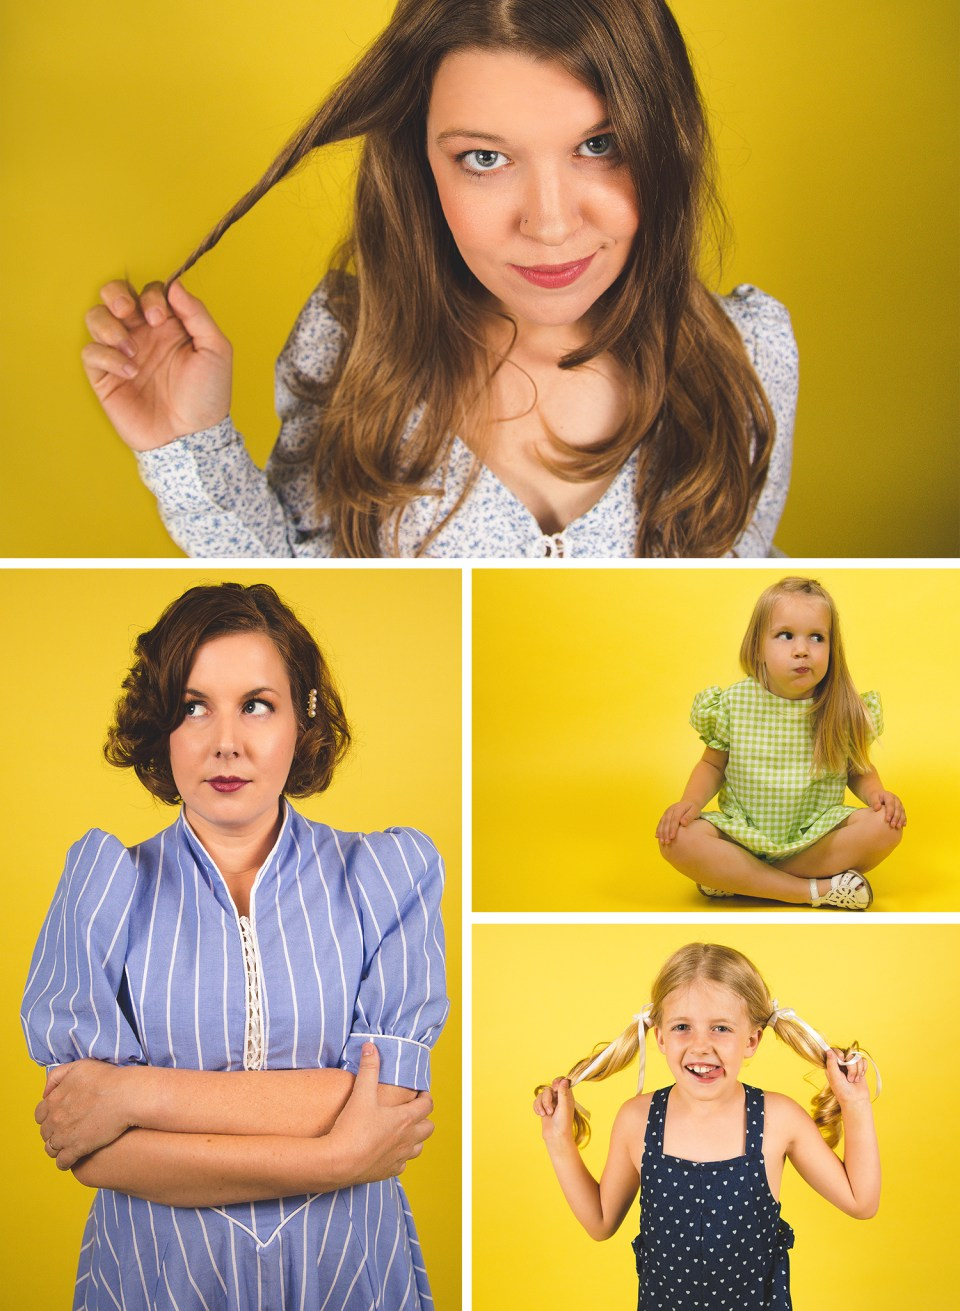 collage of girls in studio with lemonade yellow backdrop